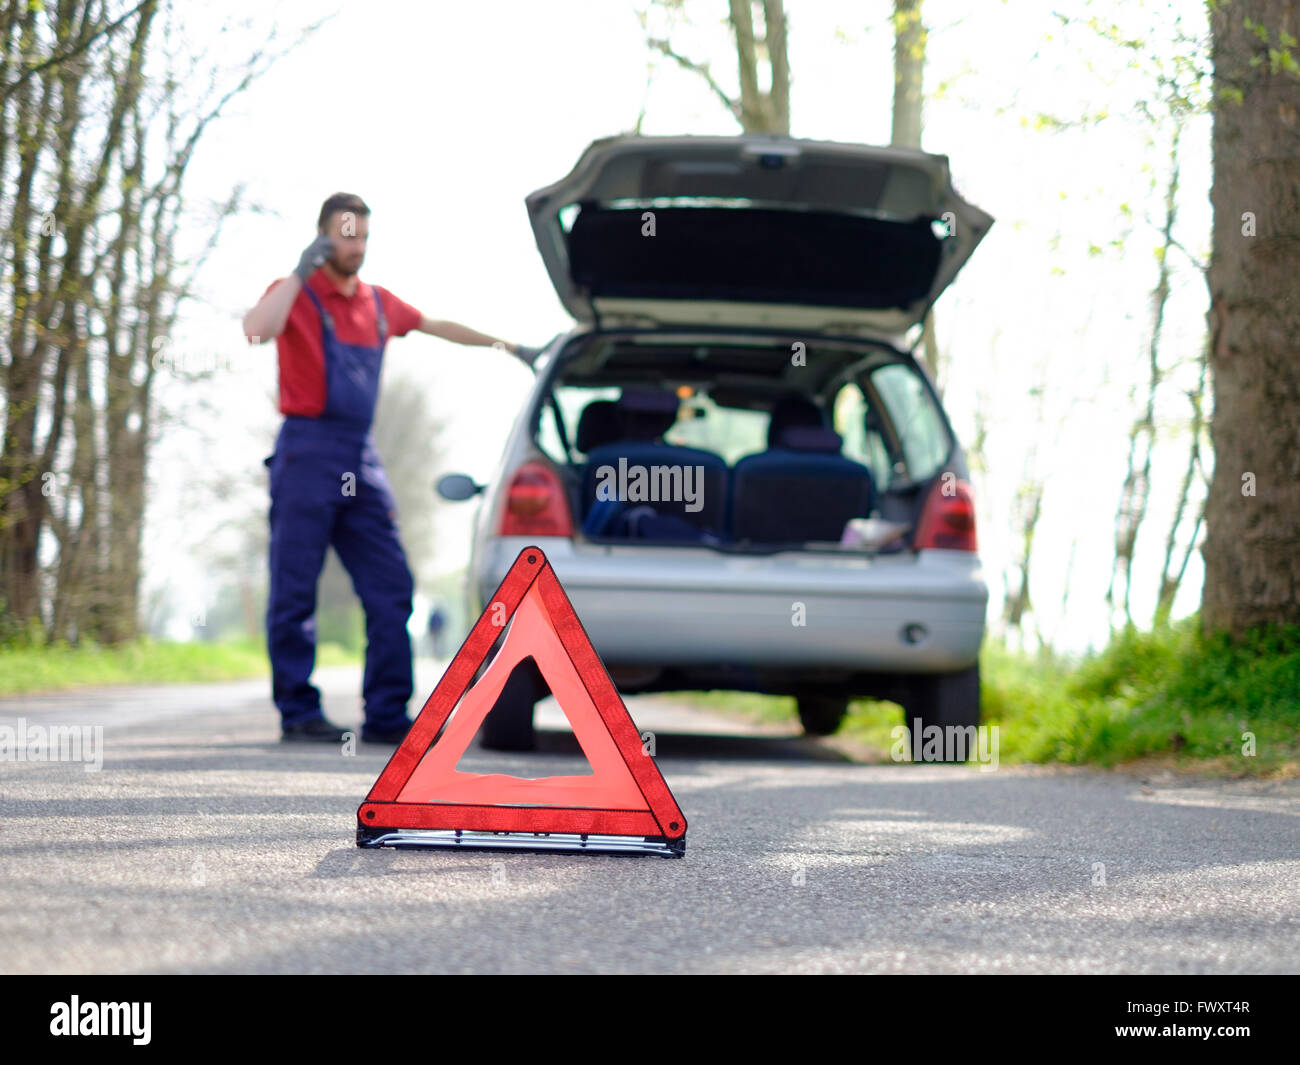 Vehicle breakdown red triangle road - Stock Image